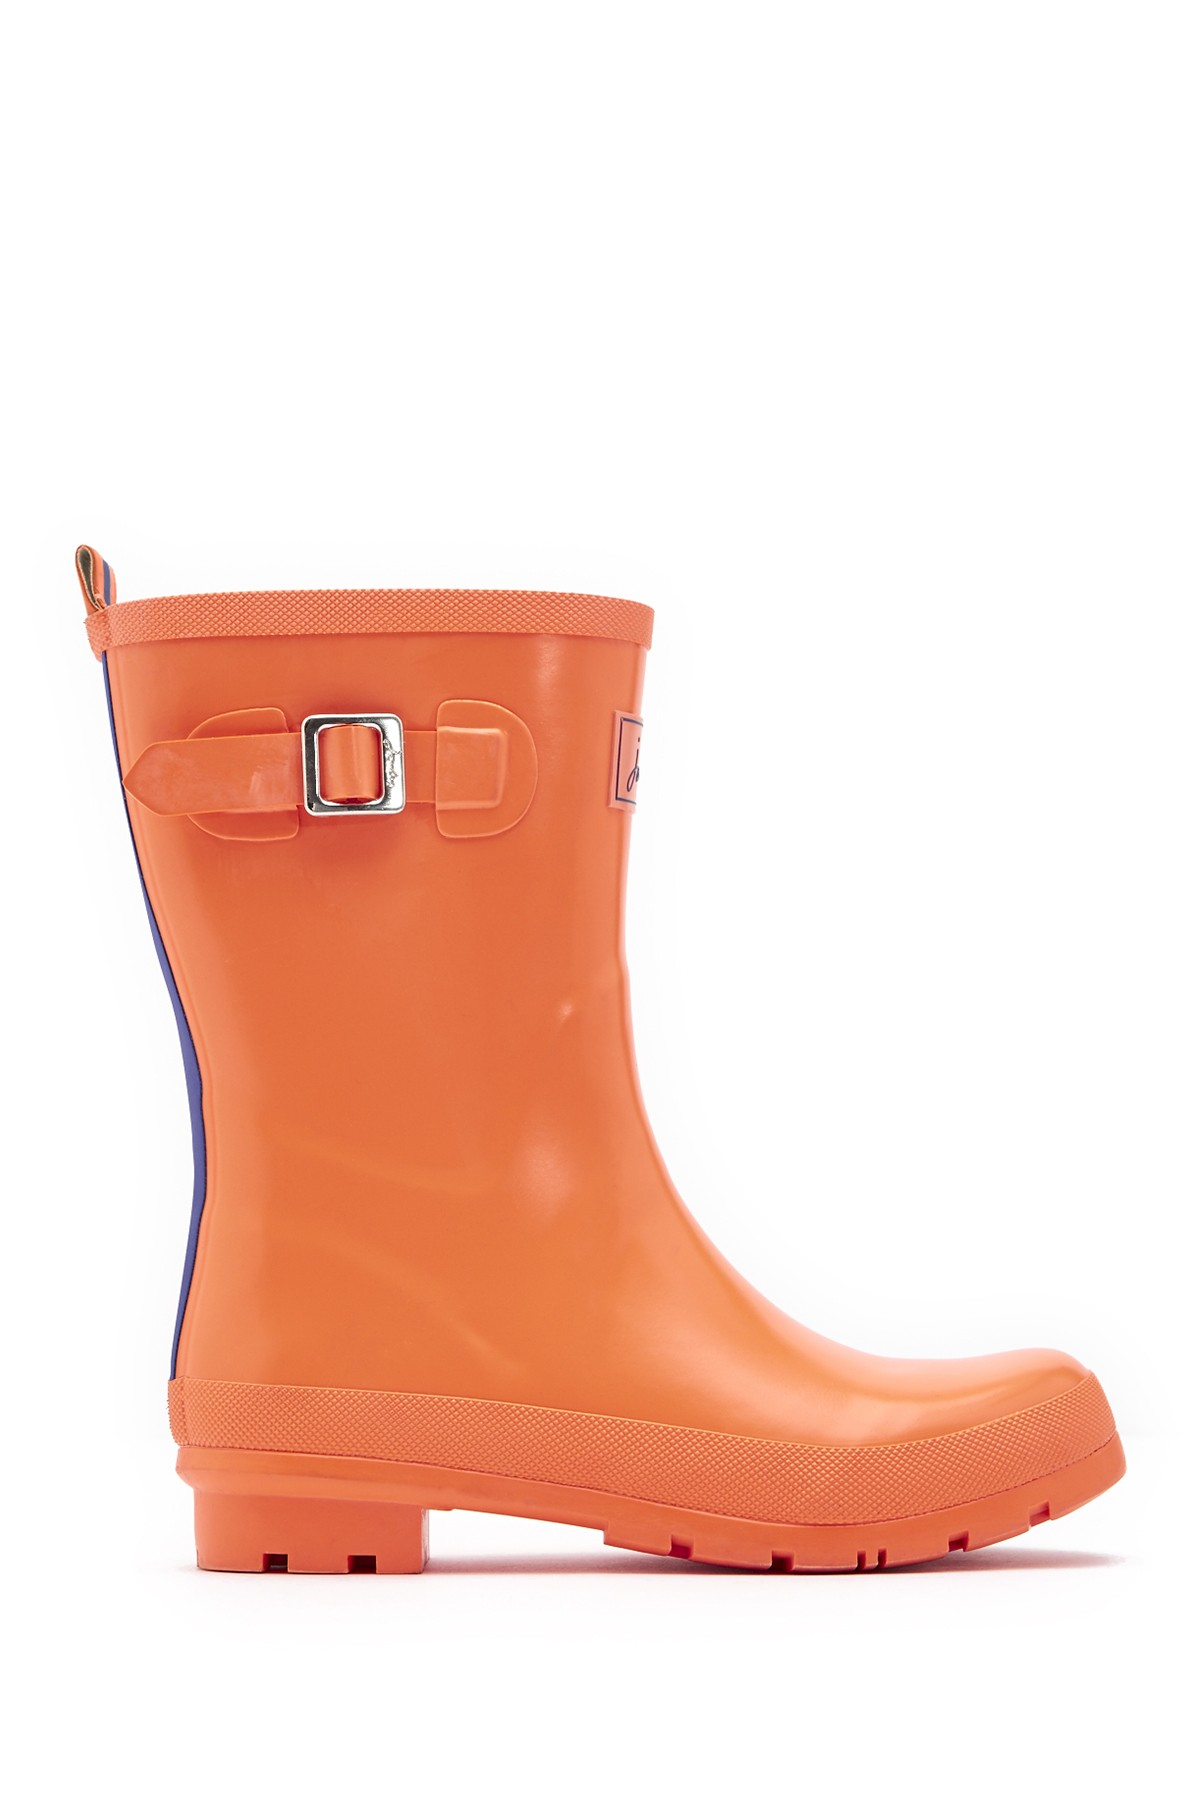 Joules 'kelly Welly' Rain Boot in Orange